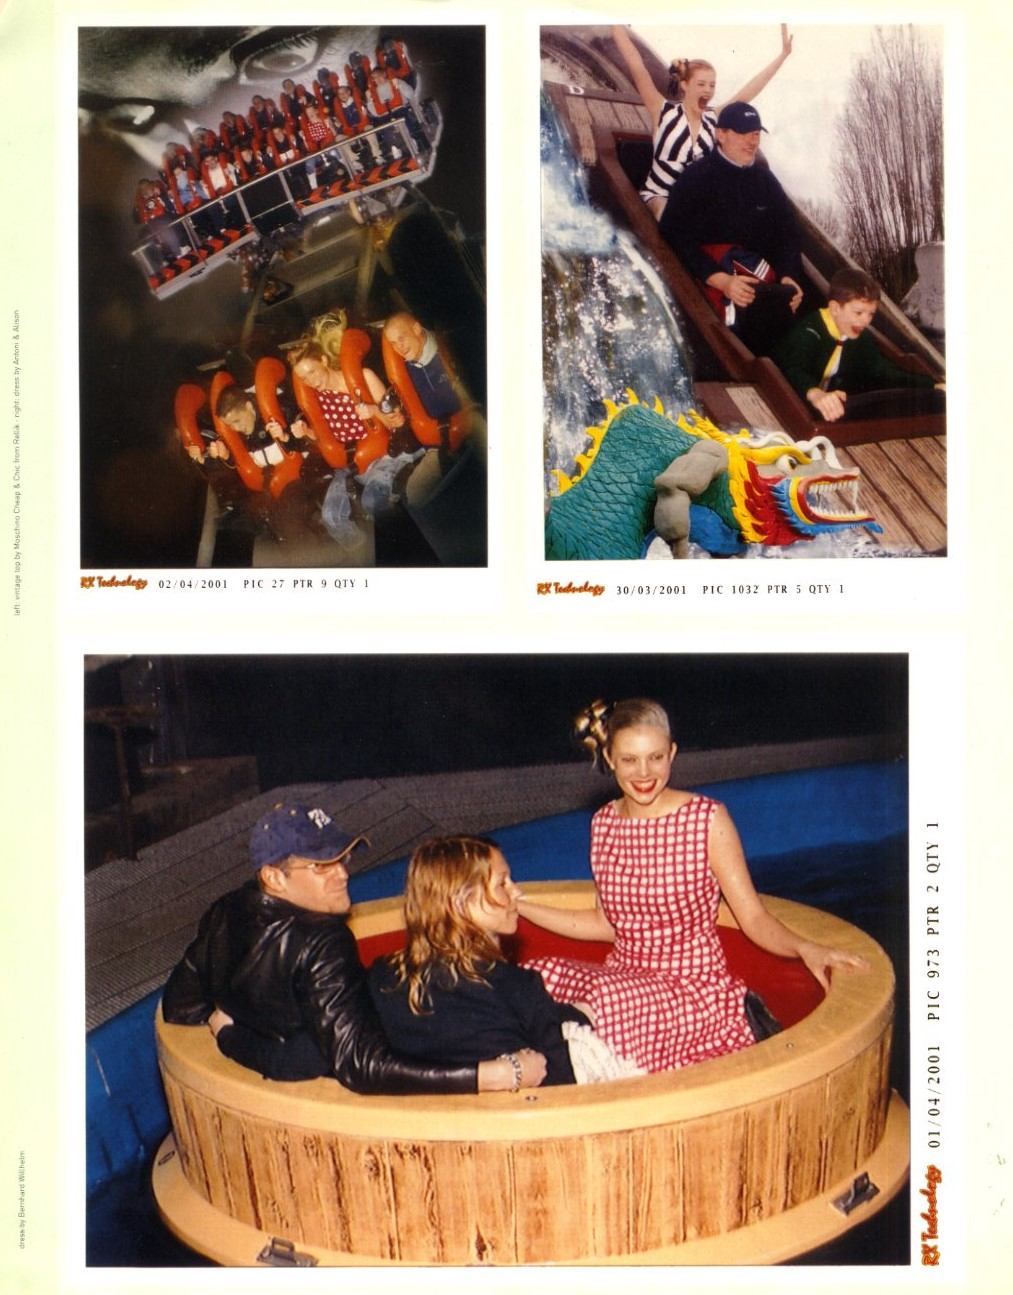 fairground attraction photography lee powers tank magazine volume 2 issue 5 1